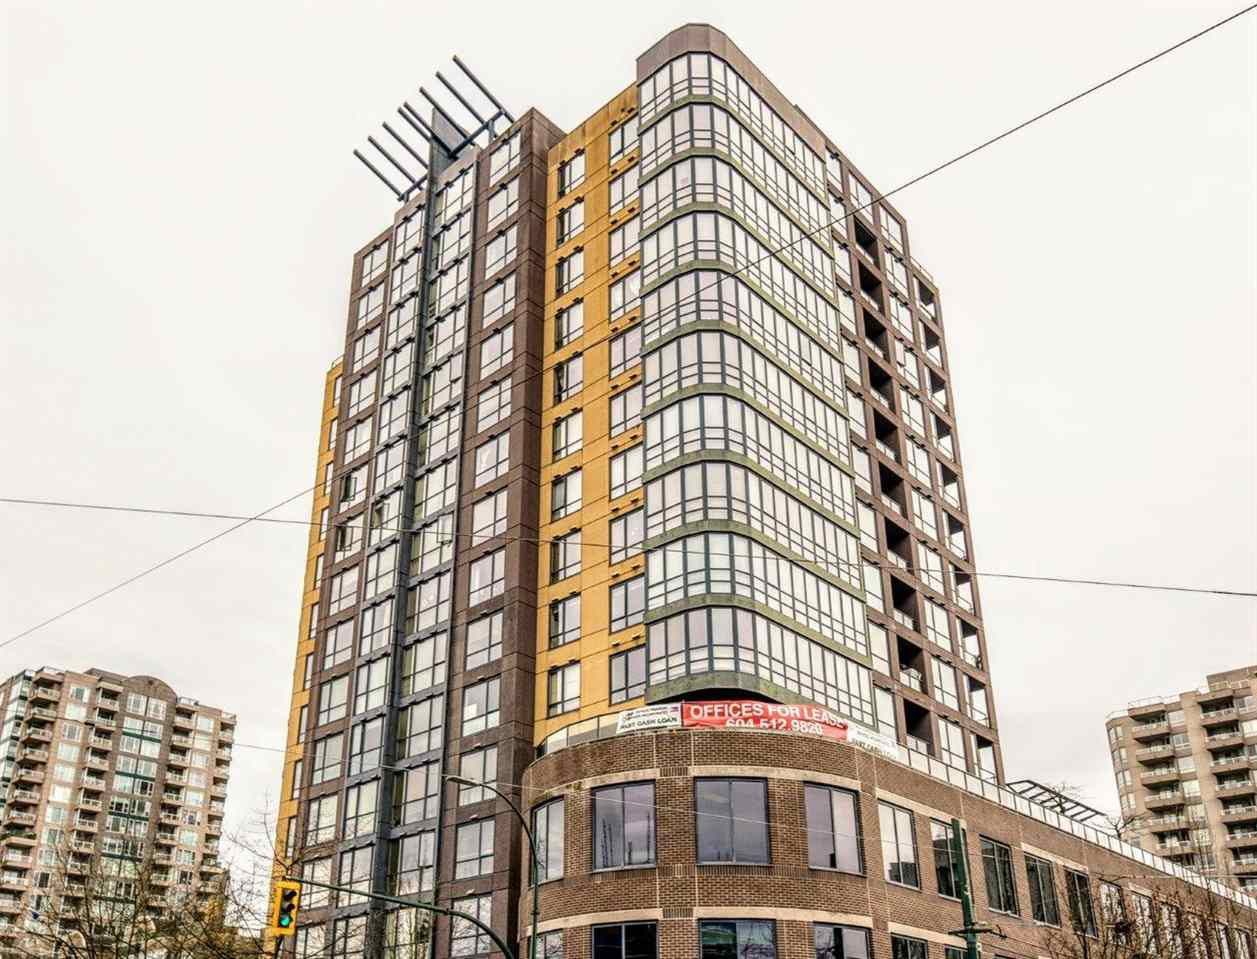 Main Photo: 1103 3438 VANNESS AVENUE in Vancouver: Collingwood VE Condo for sale (Vancouver East)  : MLS®# R2169737